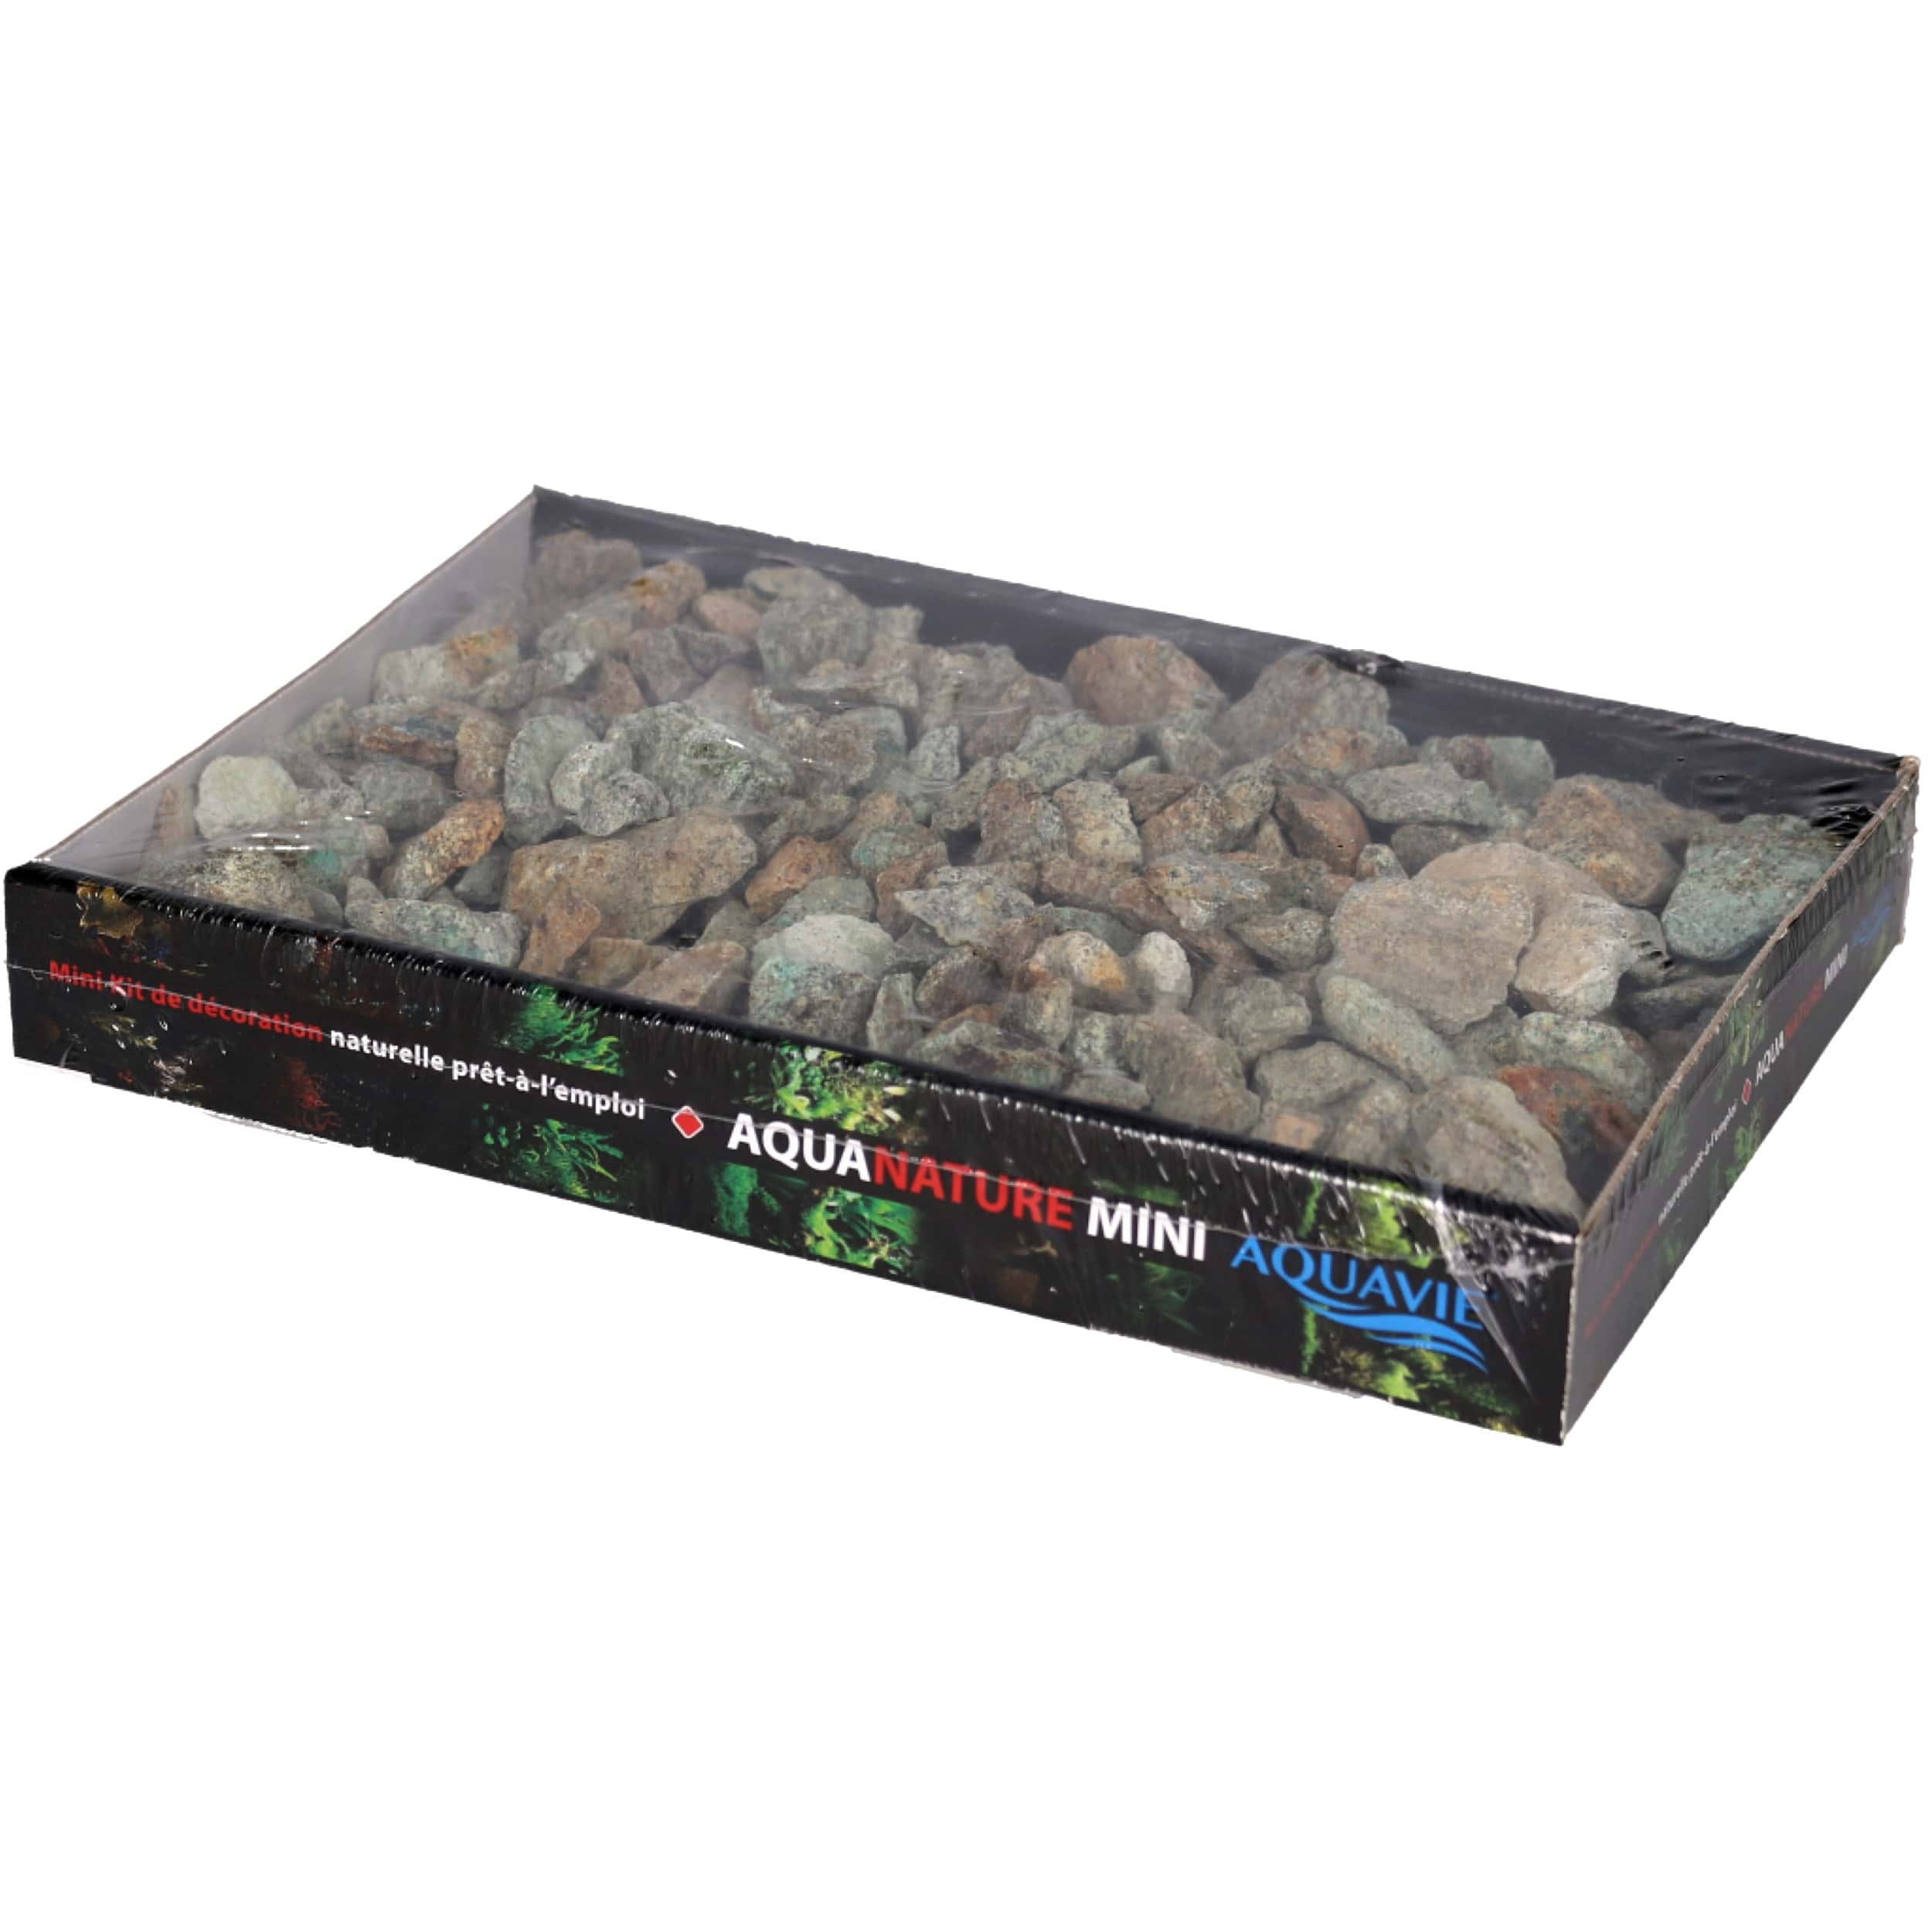 AQUAVIE AquaNature Green Africa Mini S barquette 1 Kg de pierres décoratives pour aquarium et terrarium